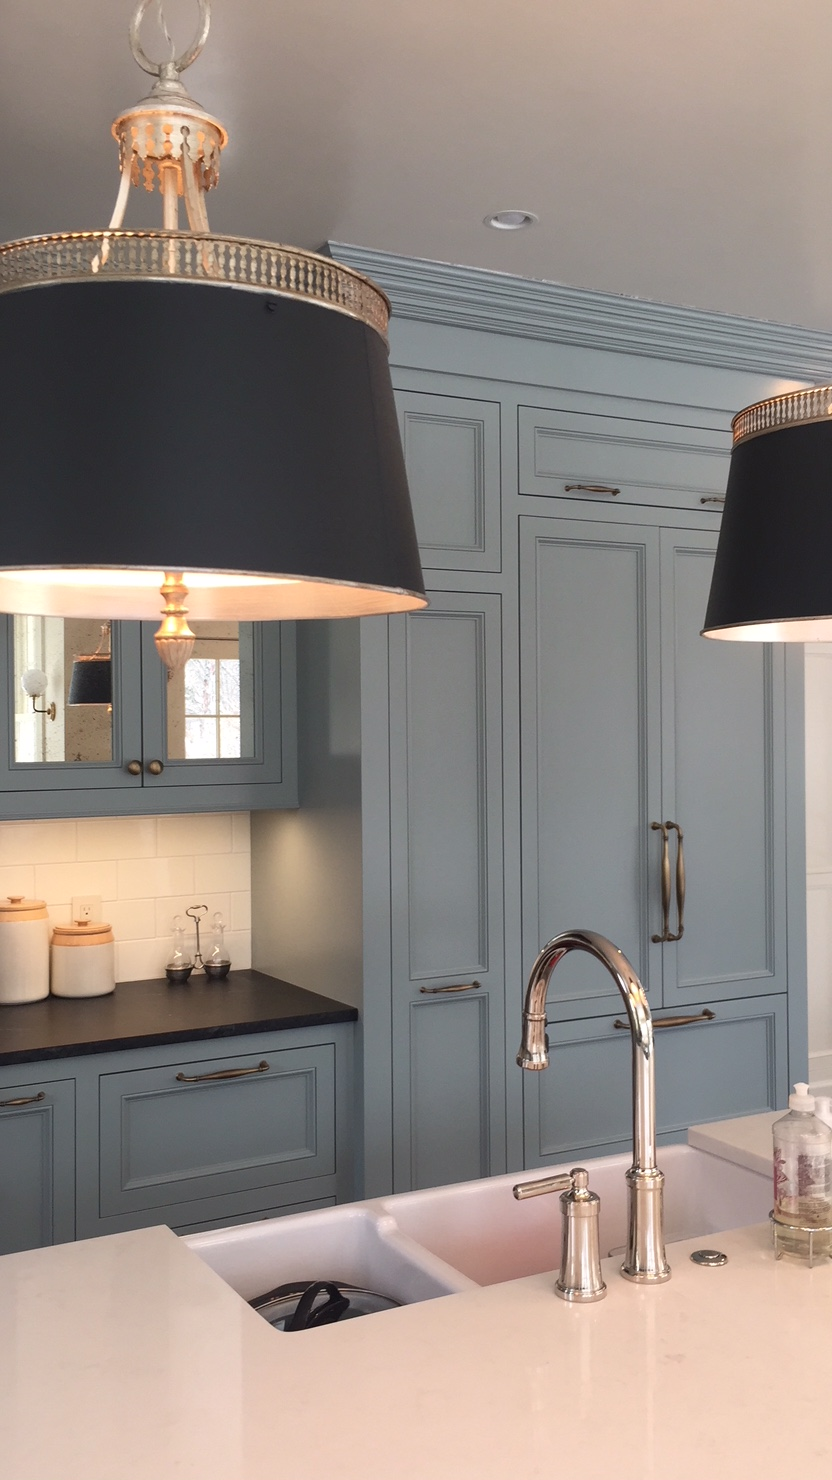 How to Survive a Kitchen Renovation | Kelly Rogers Interiors | Interiors for Families